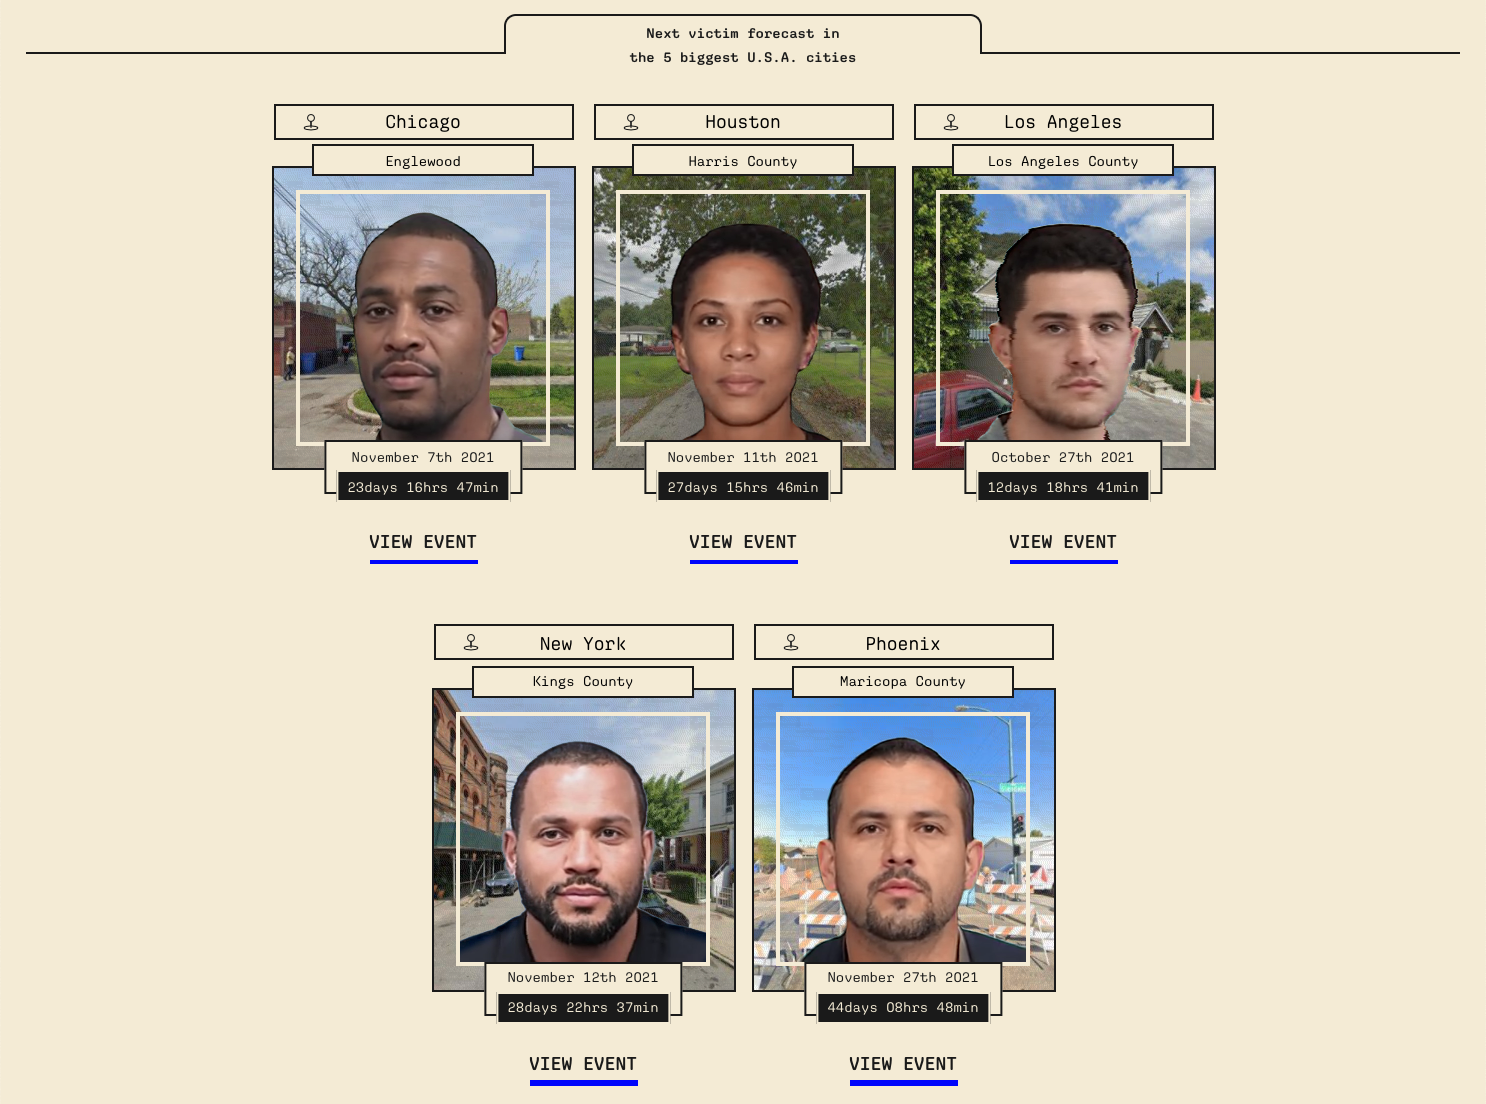 Future Wakes features fictional stories about police killings that are based on real data.